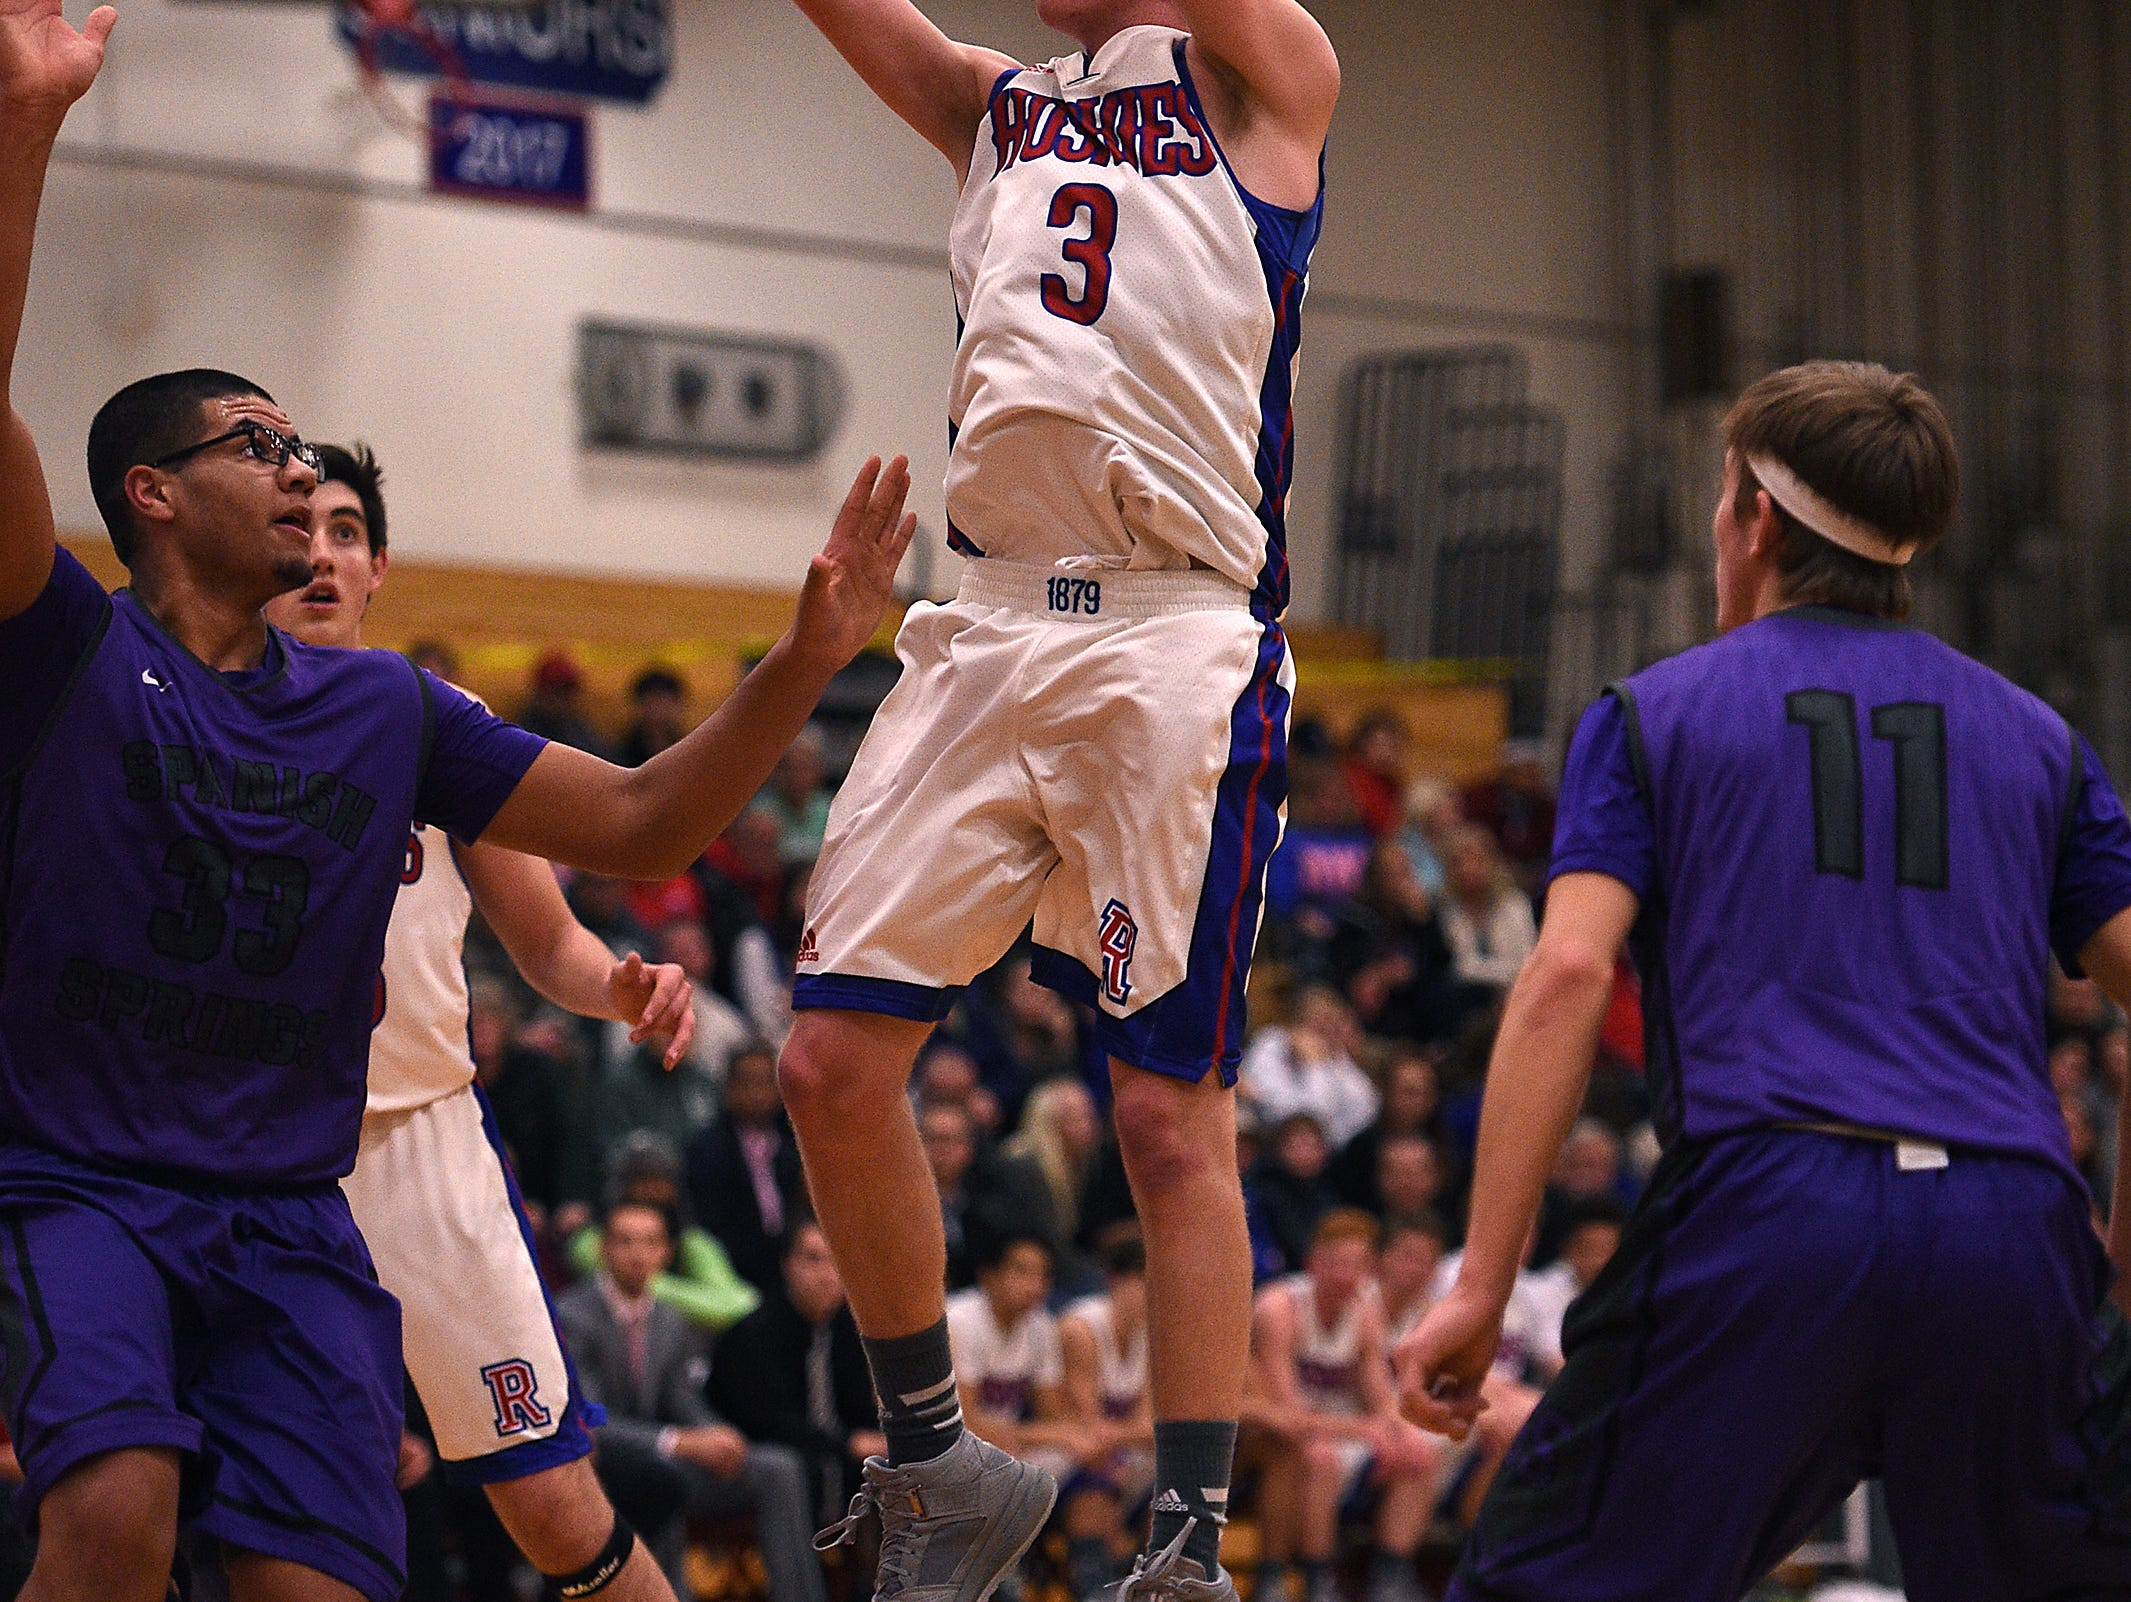 Reno's Drew Rippingham (3) shoots while taking on Spanish Springs during their basketball game last season.